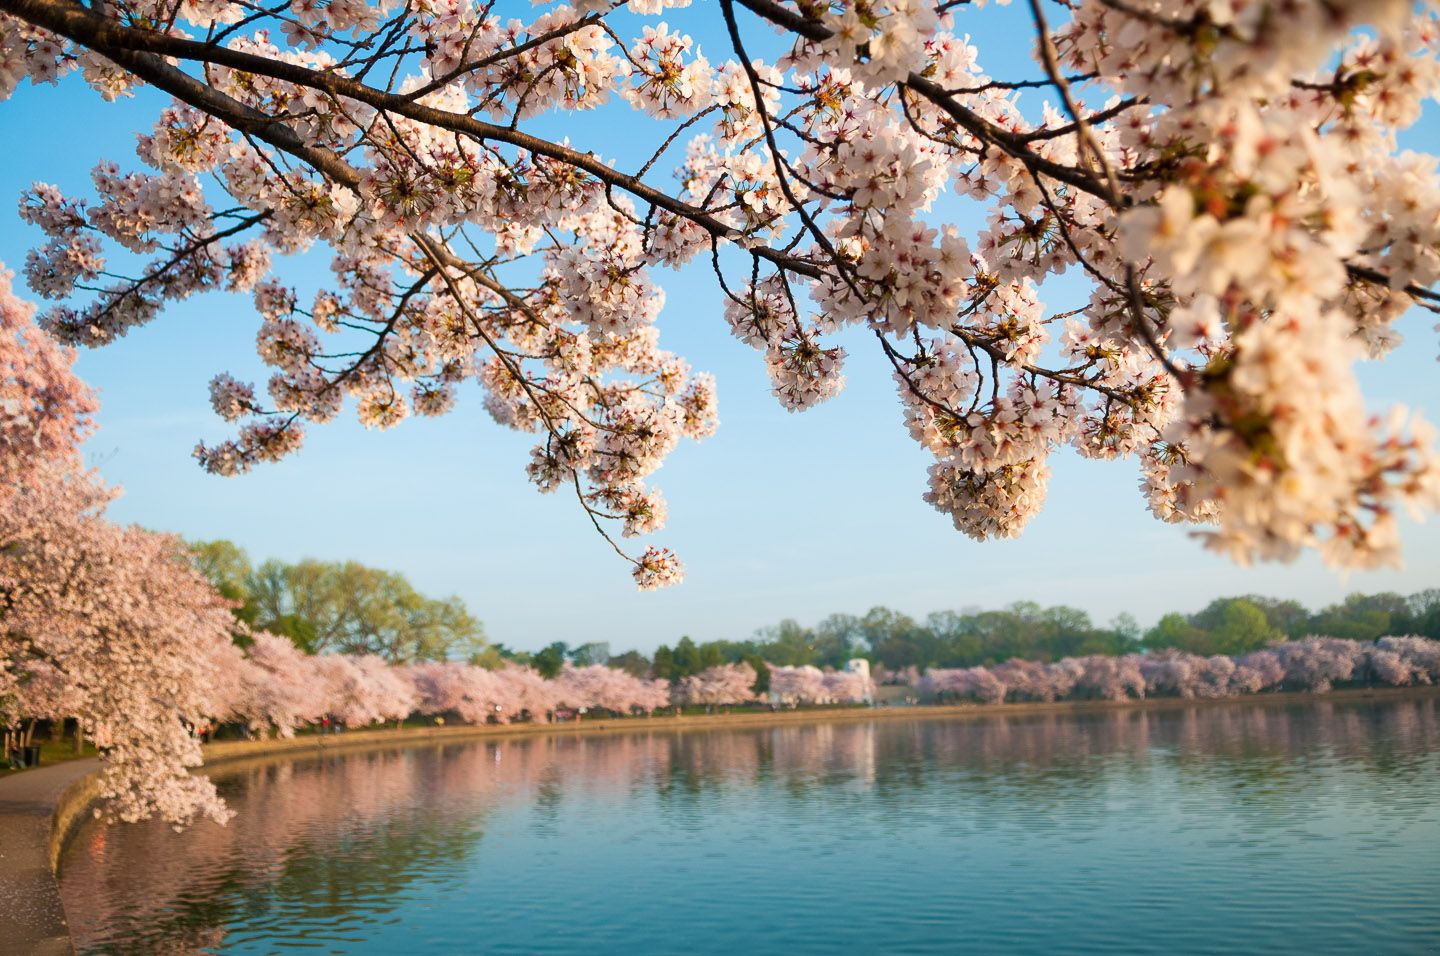 When Is The Best Time To Visit Washington Dc To See Cherry Blossoms Cherry Blossom Washington Dc Cherry Blossom Festival Visiting Washington Dc